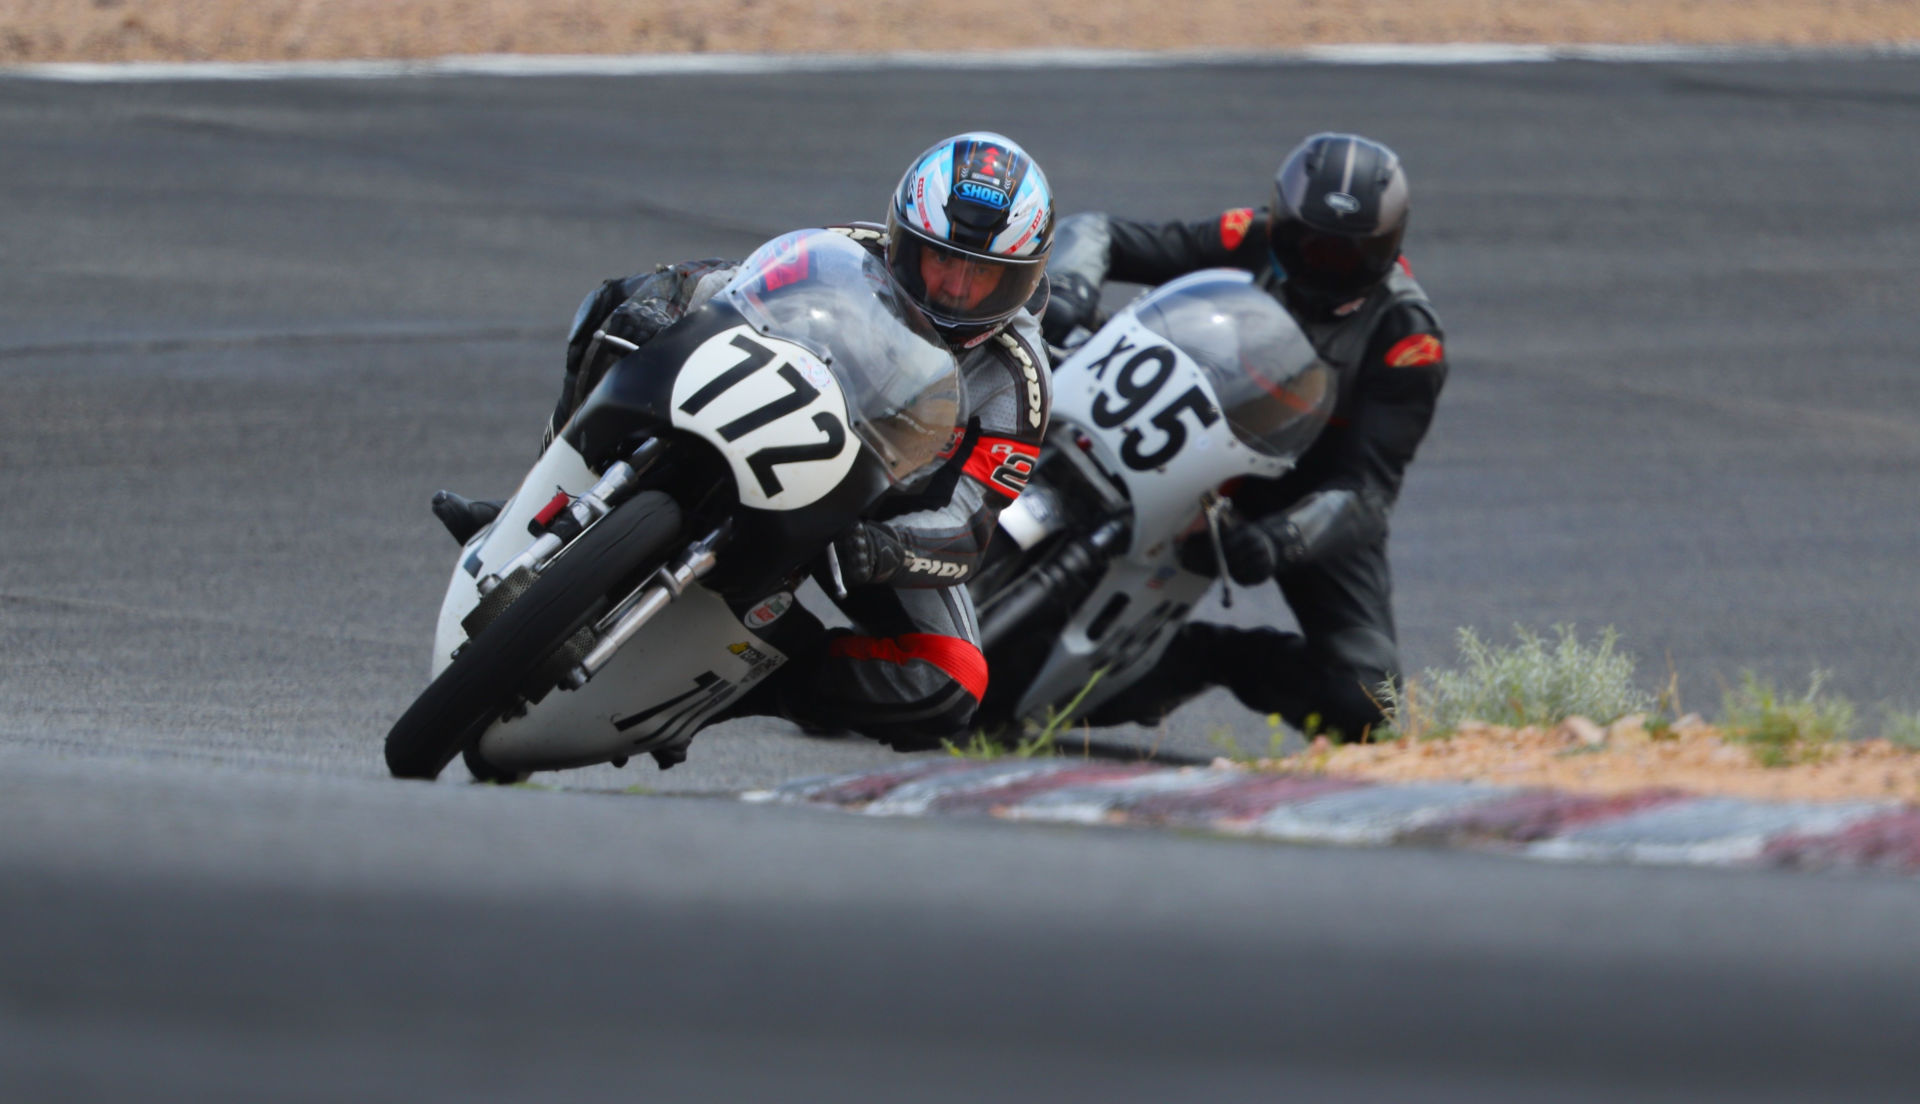 Jeff Elings (772) and Andrew Mauk (X95) battle at Willow Springs International Raceway. Photo by etechphoto.com, courtesy AHRMA.